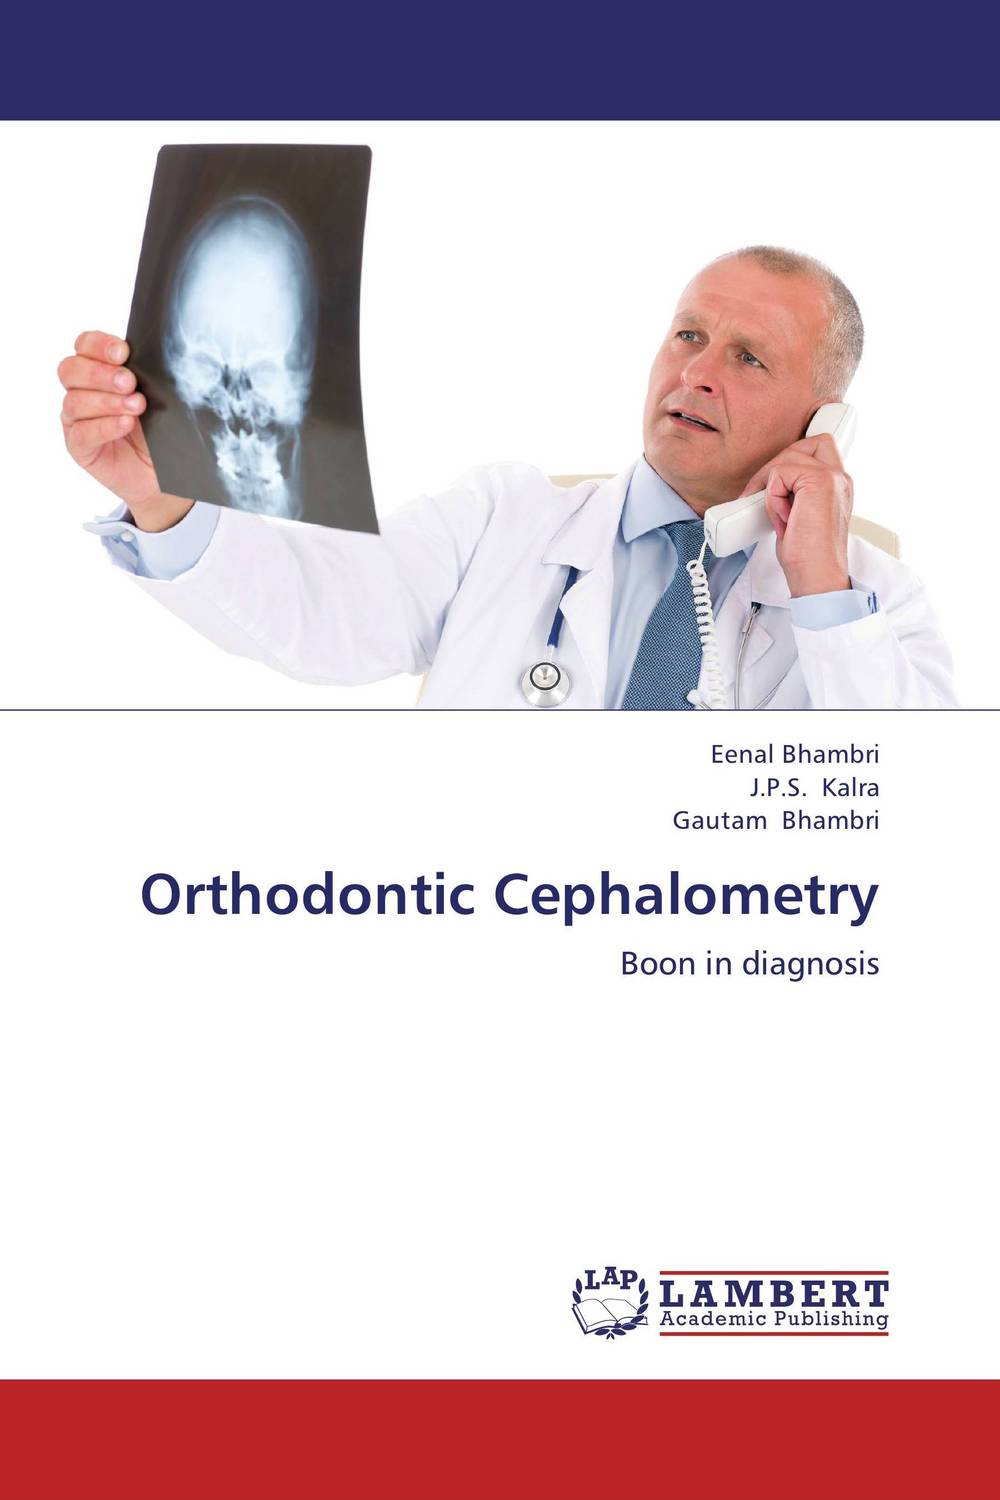 Orthodontic Cephalometry альбом cephalotripsy uterovaginal insertion of extirpated anomalies